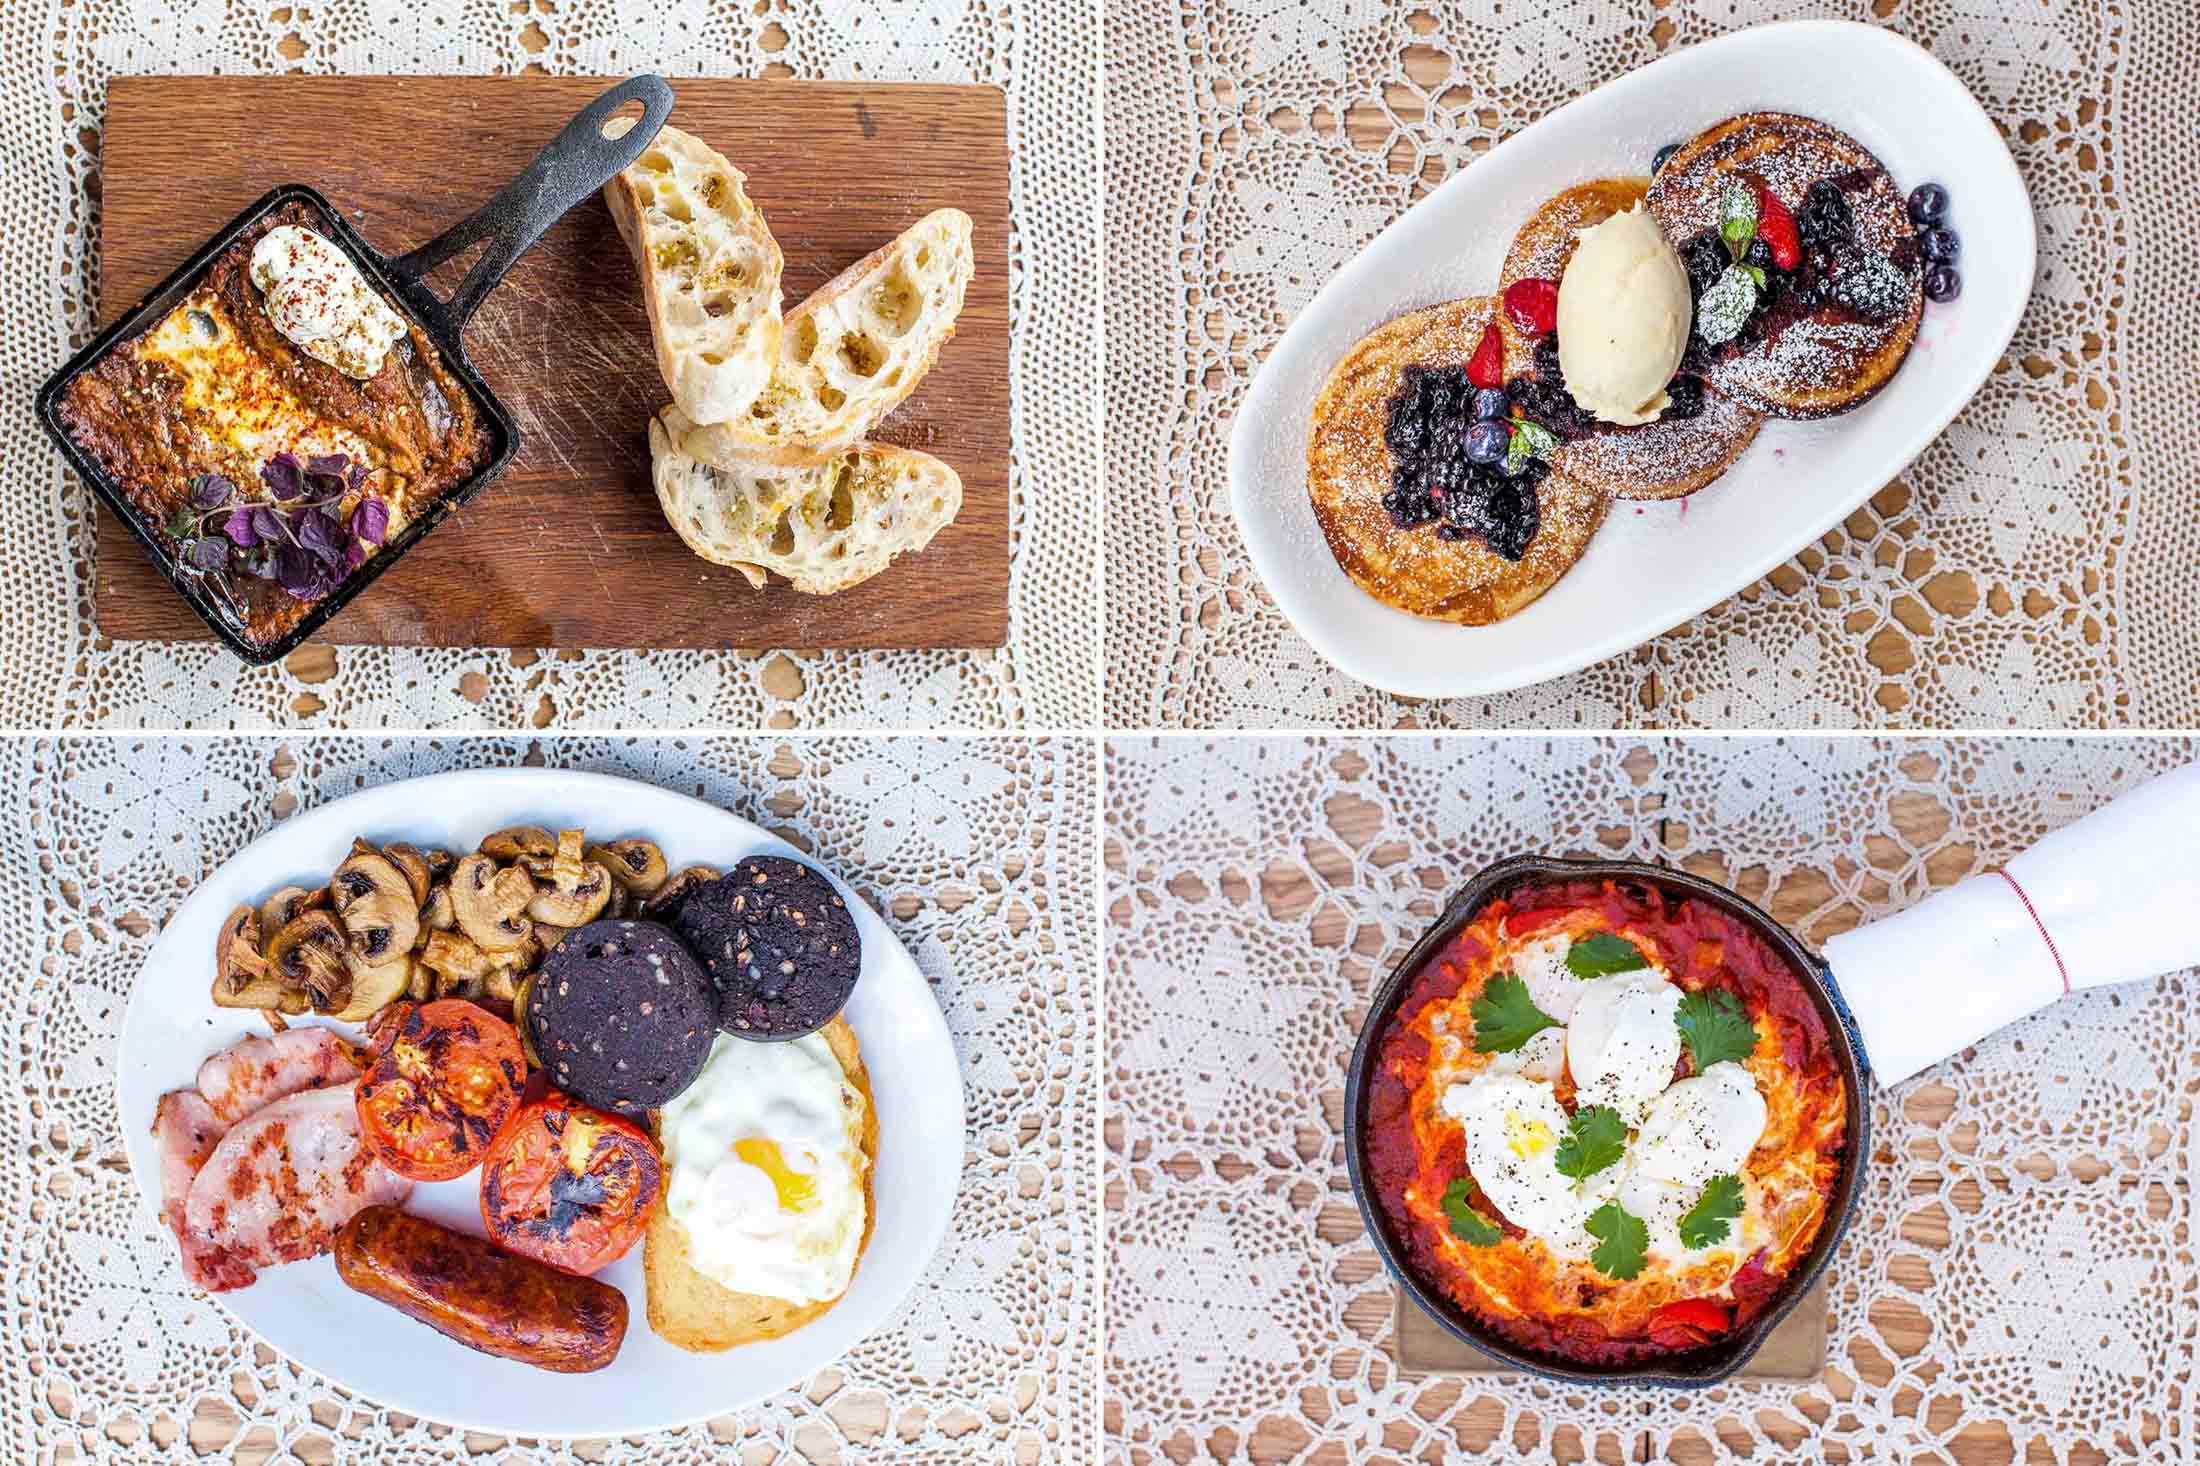 he Best Breakfast in London, According to Top Chefs